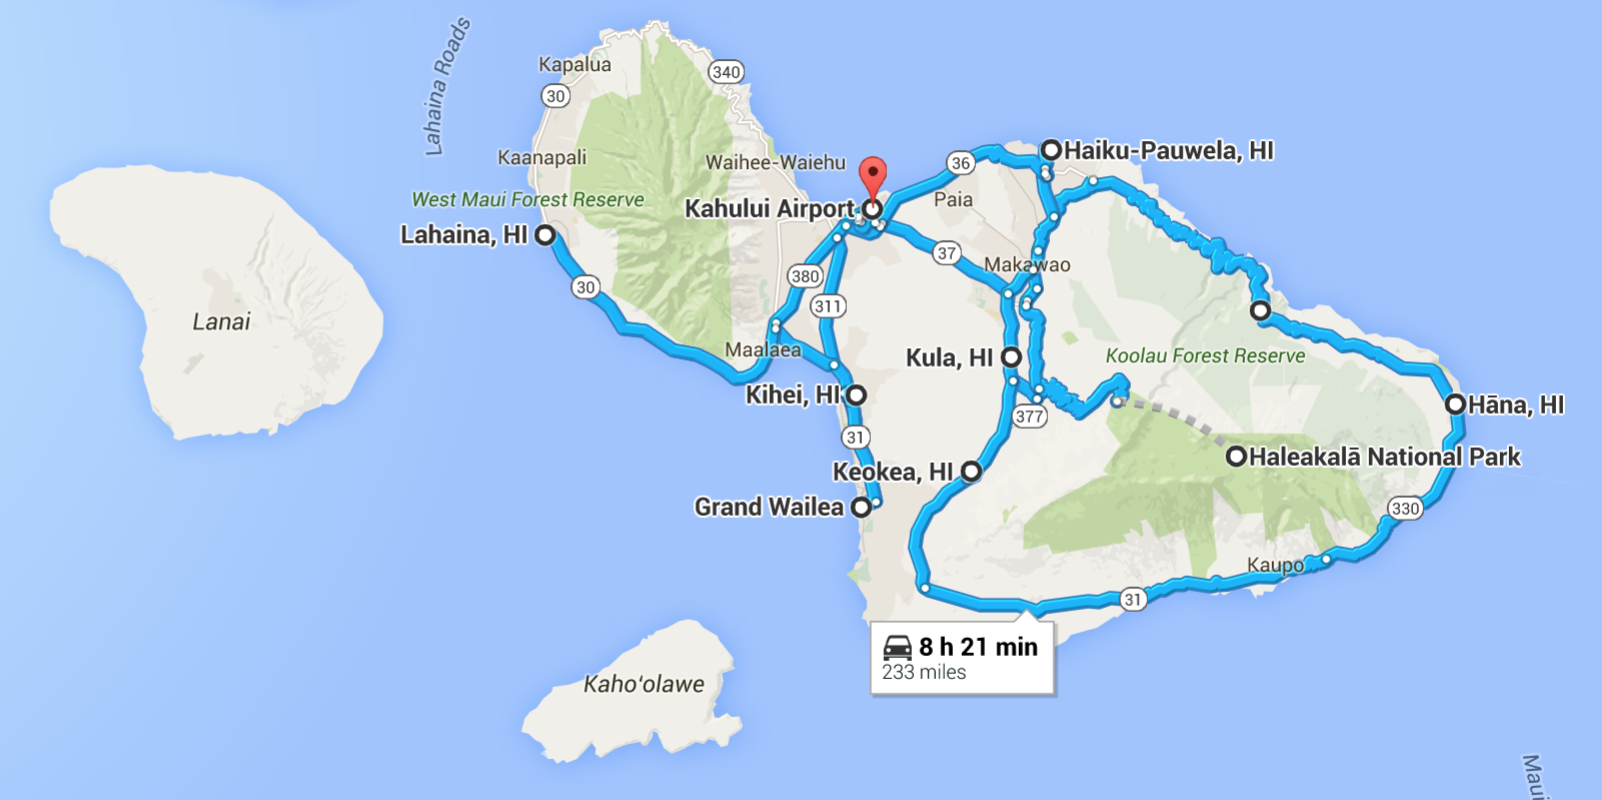 Maui Hawaii road trip map itinerary